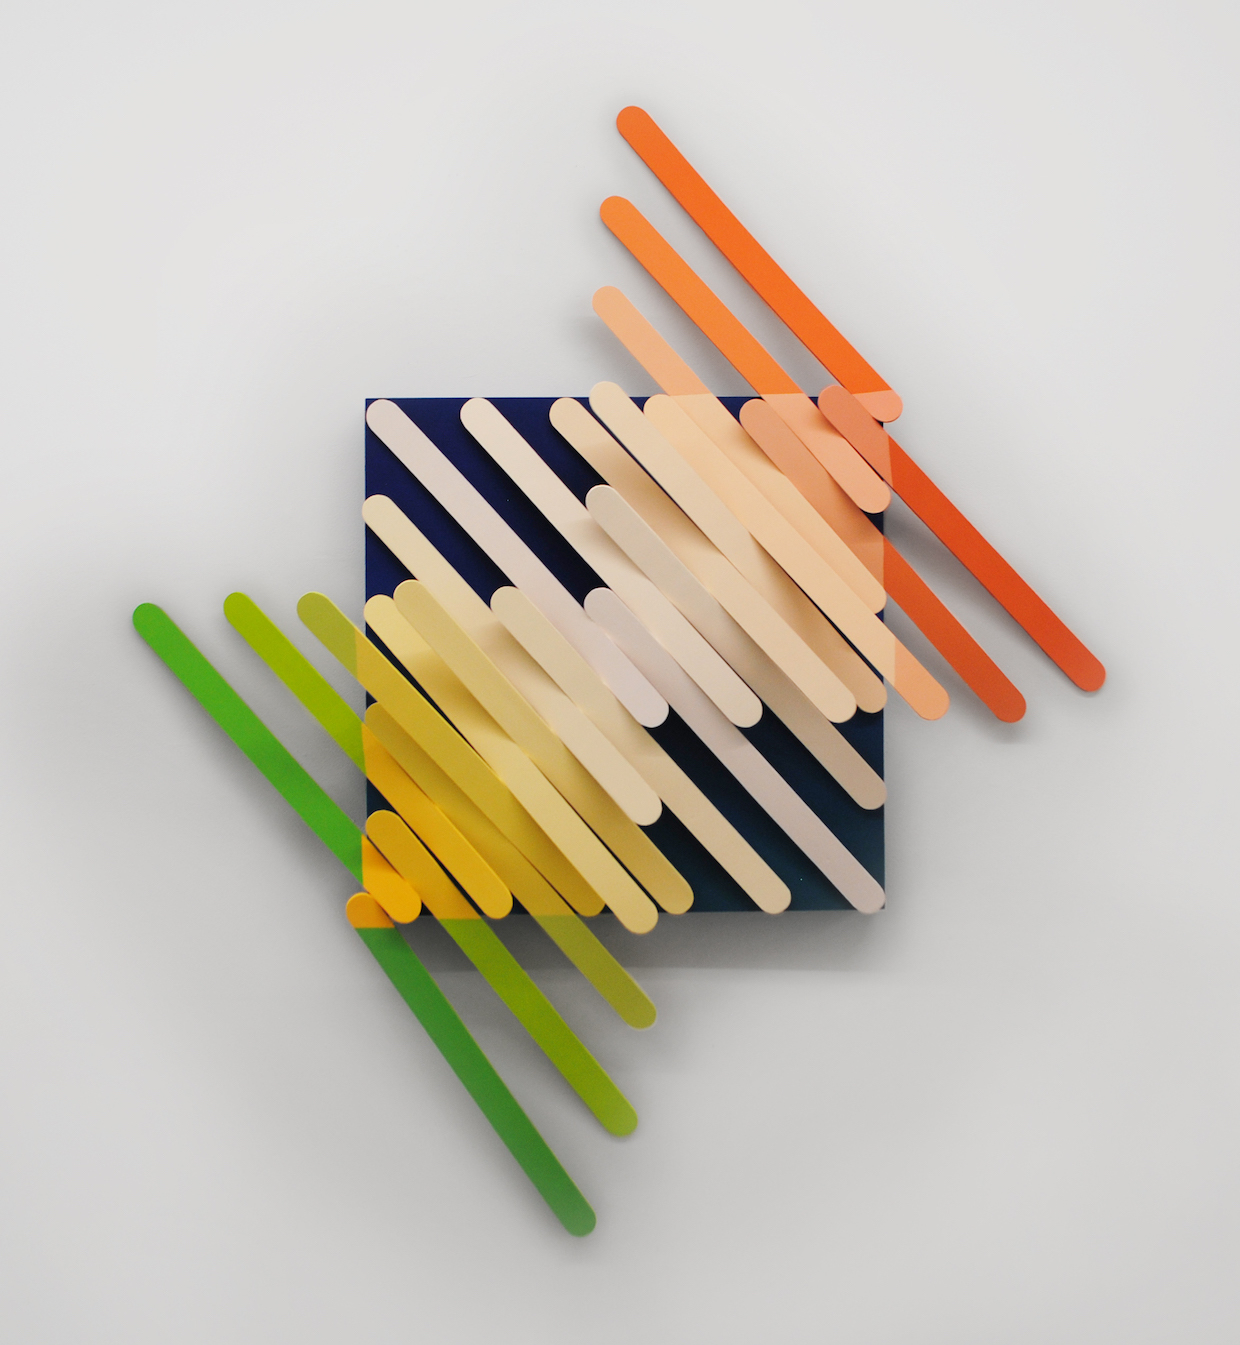 "Kayla Rumpp, Teeter, acrylic, foam board, on wood, enlarged popsicle sticks ascending towards the center, 40"" x 40"" 6"", 2019"